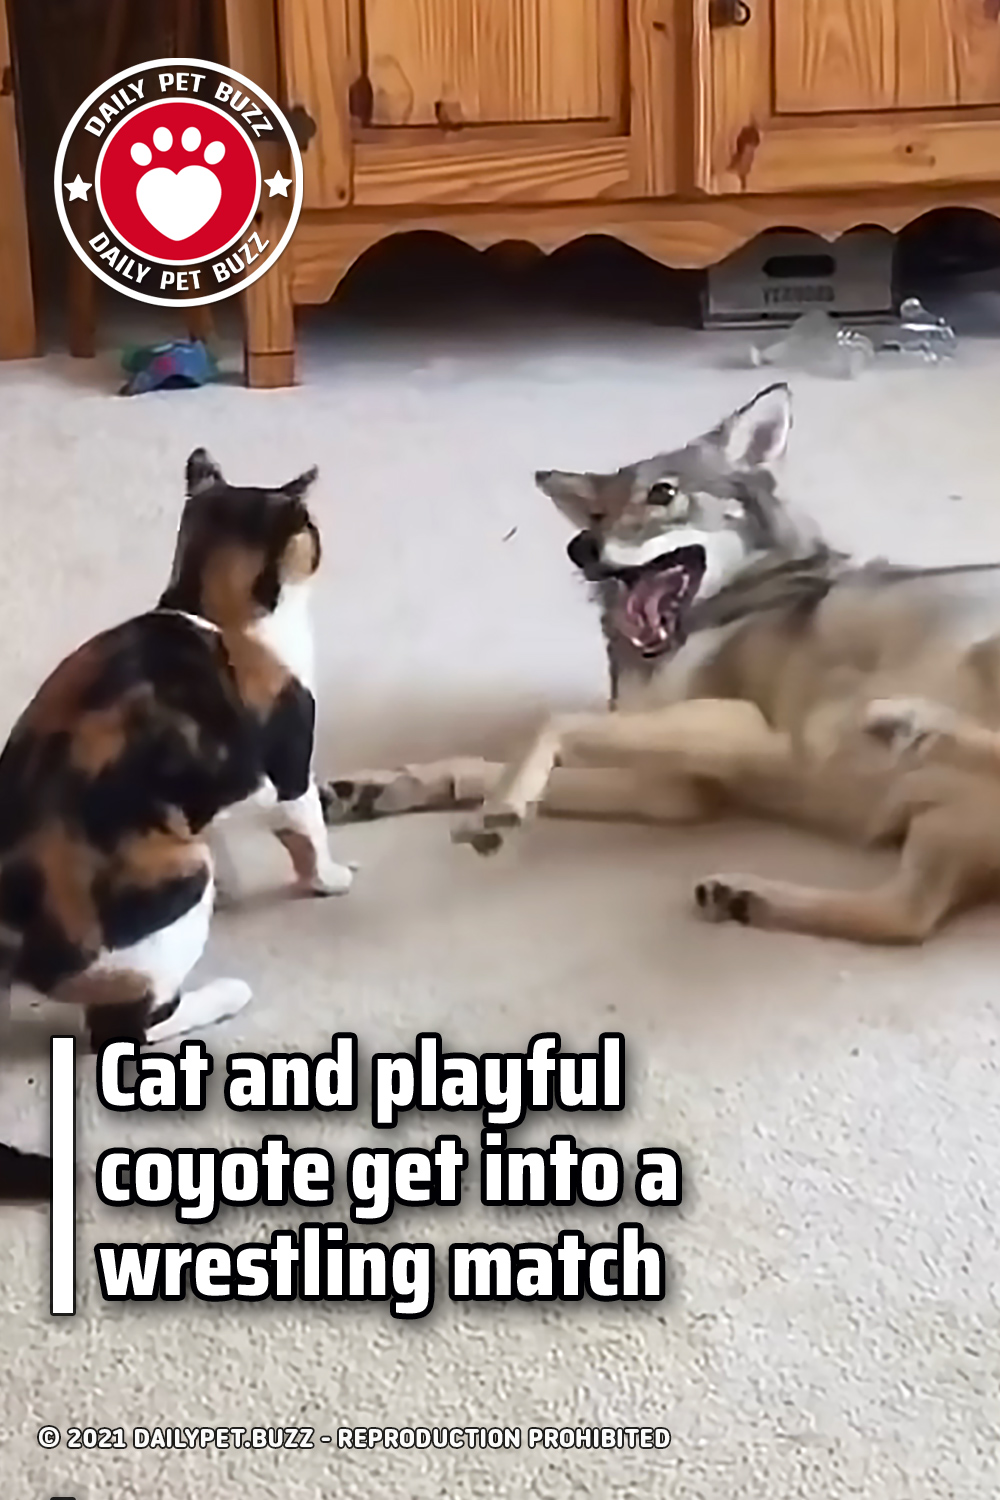 Cat and playful coyote get into a wrestling match